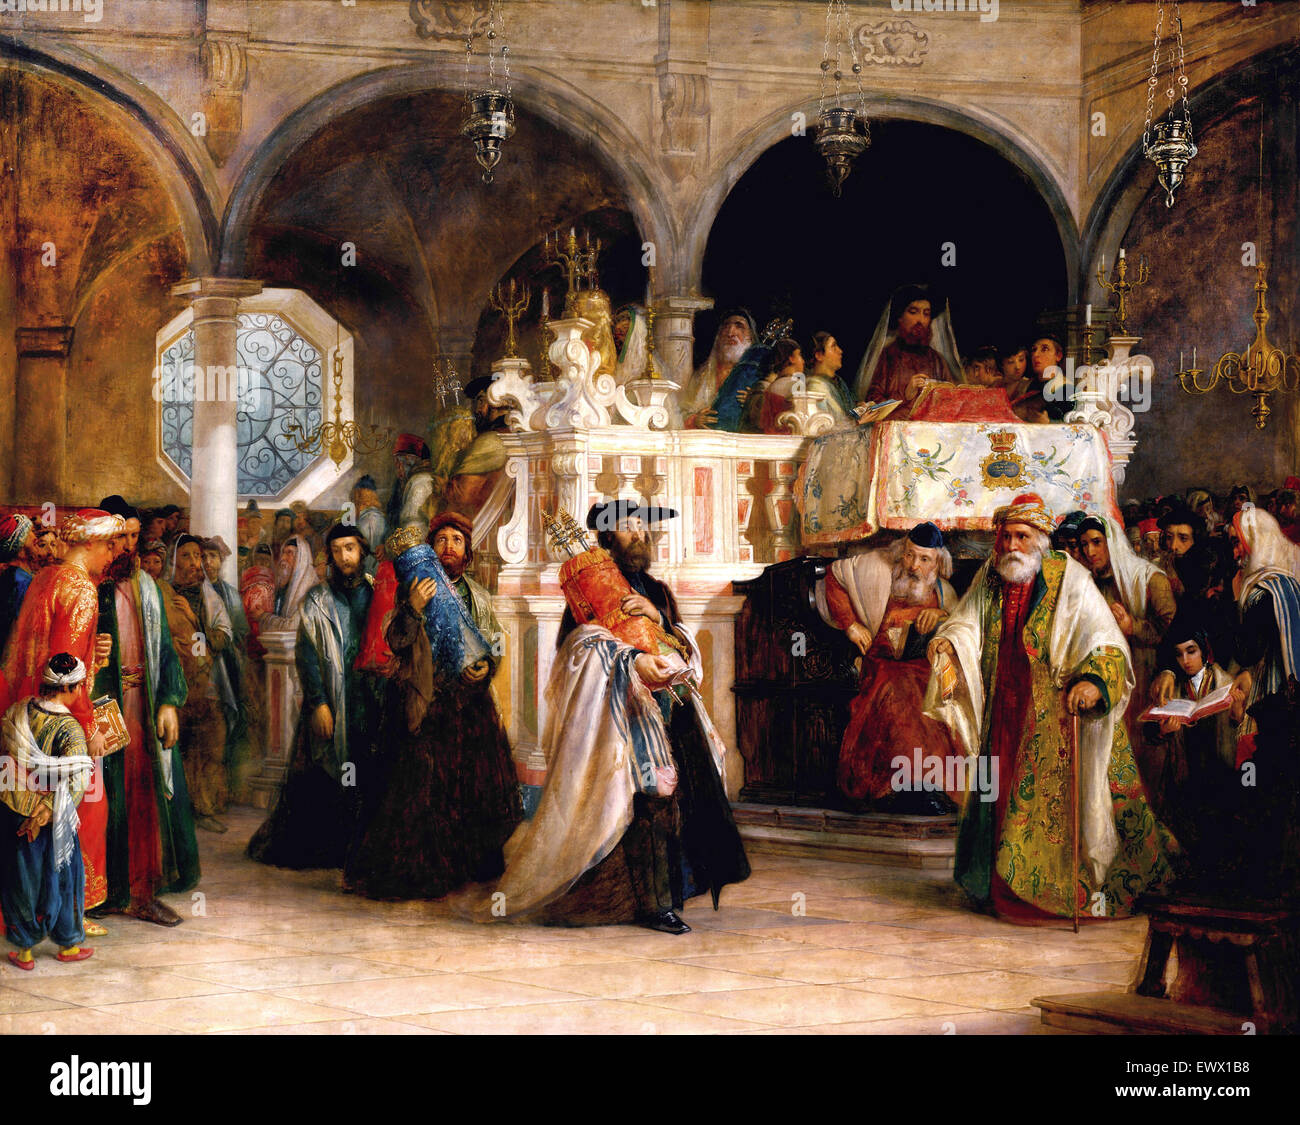 Solomon Hart, The Feast of the Rejoicing of the Law at the Synagogue in Leghorn, Italy 1850 Oil on canvas. - Stock Image